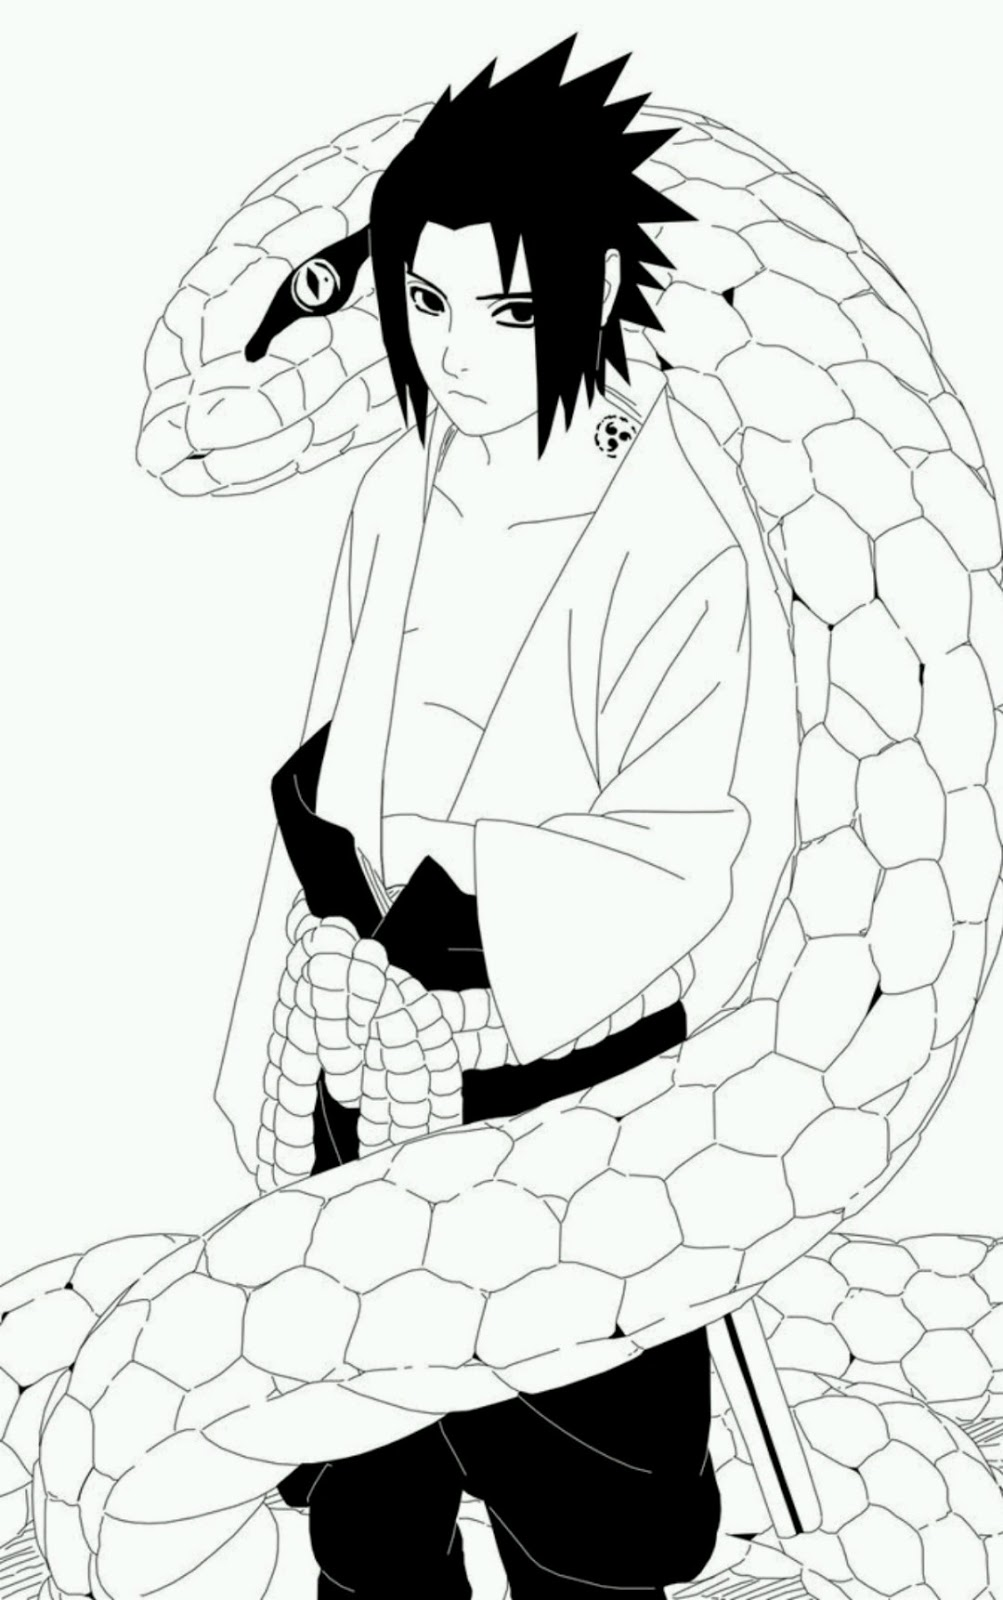 12. Download wallpaper uchiha sasuke vektor untuk android dan whatsApp chat